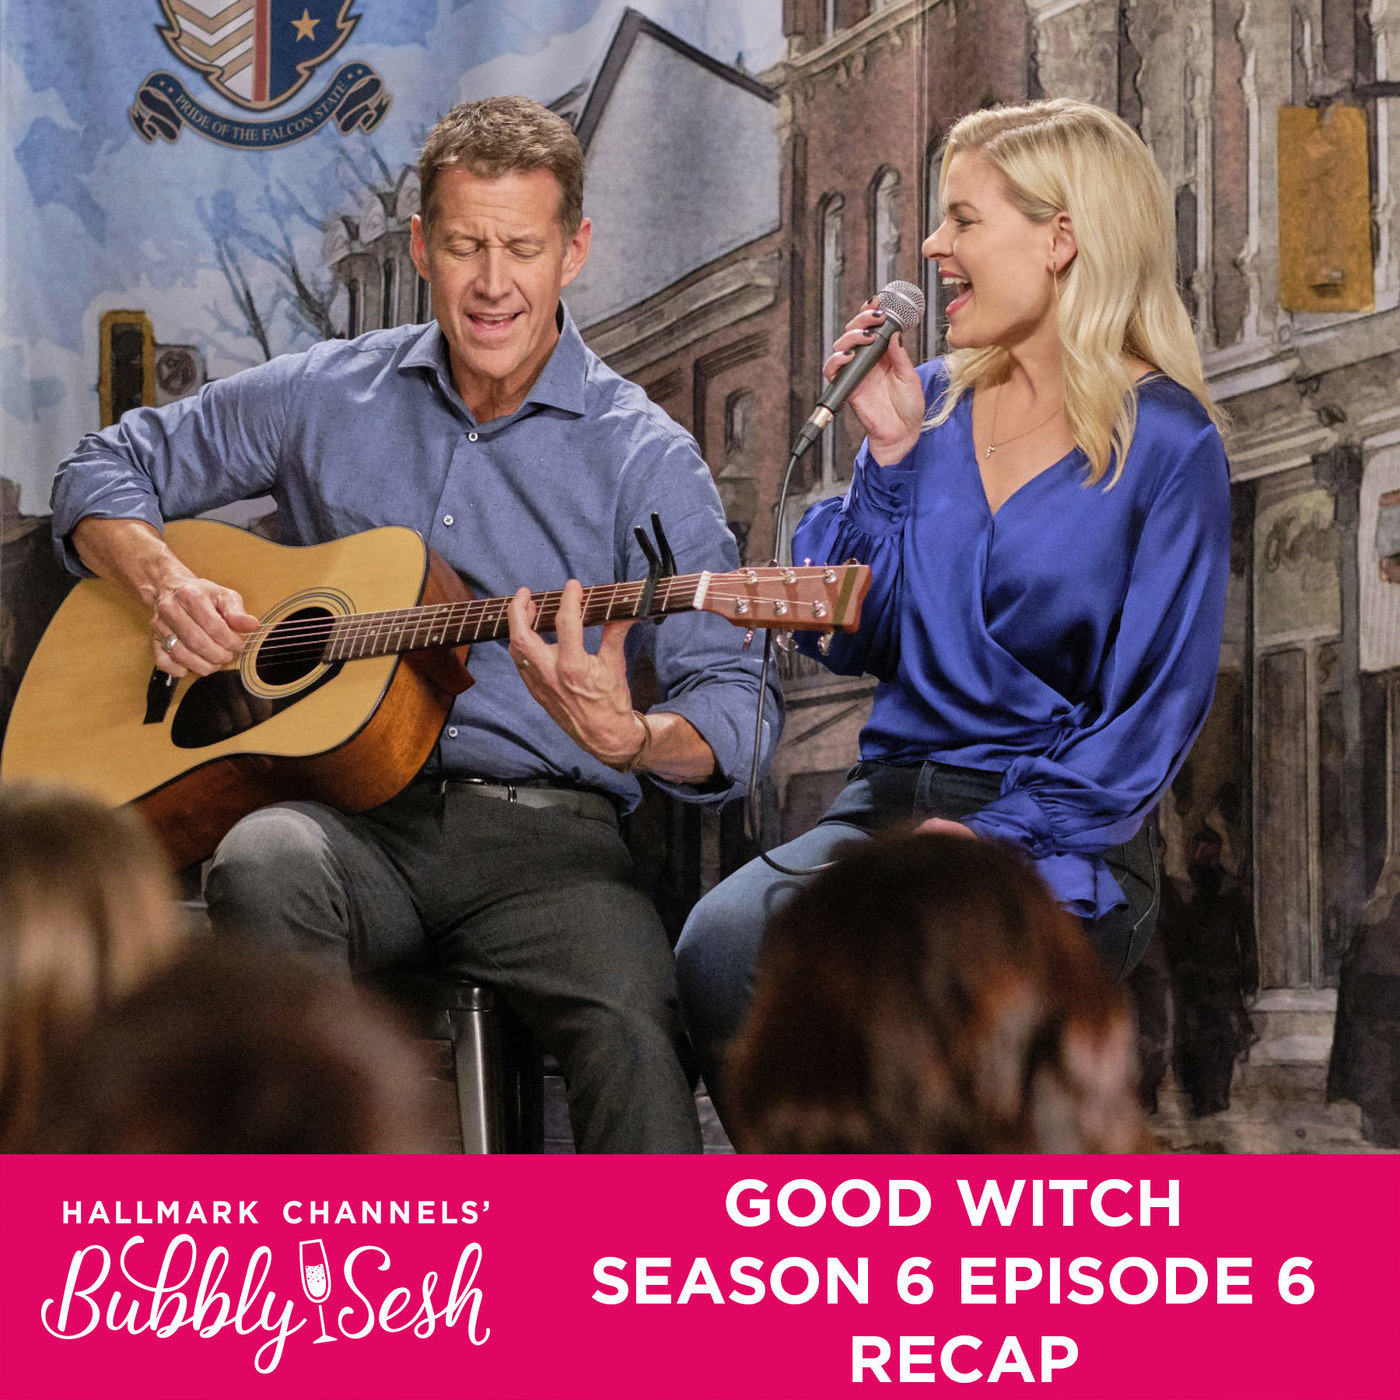 Good Witch Season 6 Episode 6 Recap